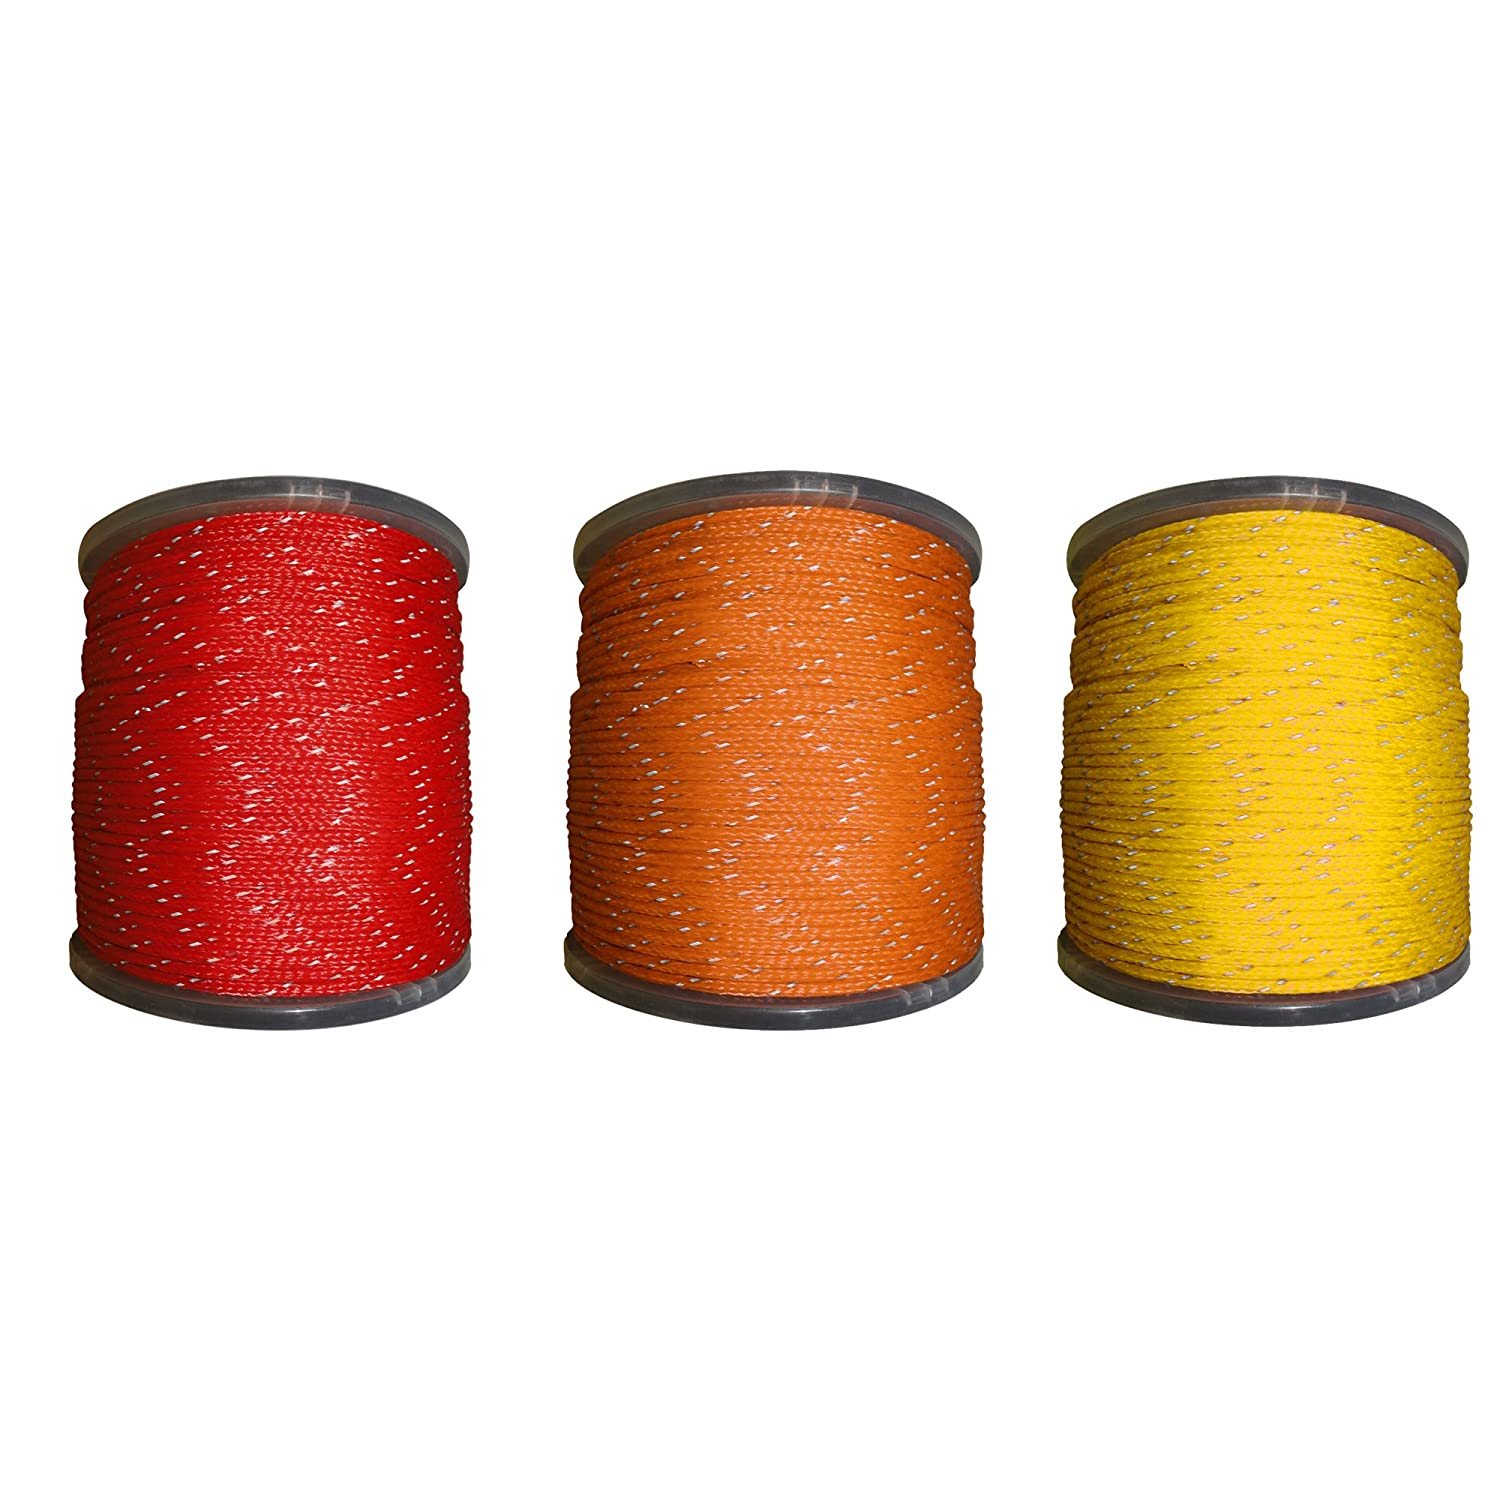 Hollow Braid Polyethylene Rope Outdoor Concerts Ski Slopes 100/% High-Grade Polyethylene Cord with Reflective Tracers Path Marking Crafting - SGT KNOTS 3//8 inch 100 feet - Coil - Yellow